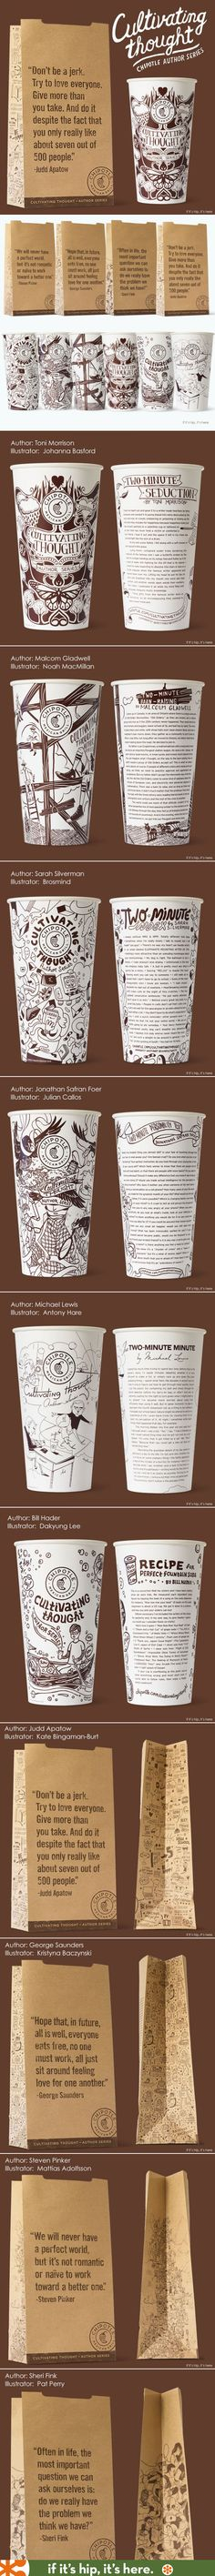 Chipotle's new Cultivating Thought project prints essays and art on their cups and bags.